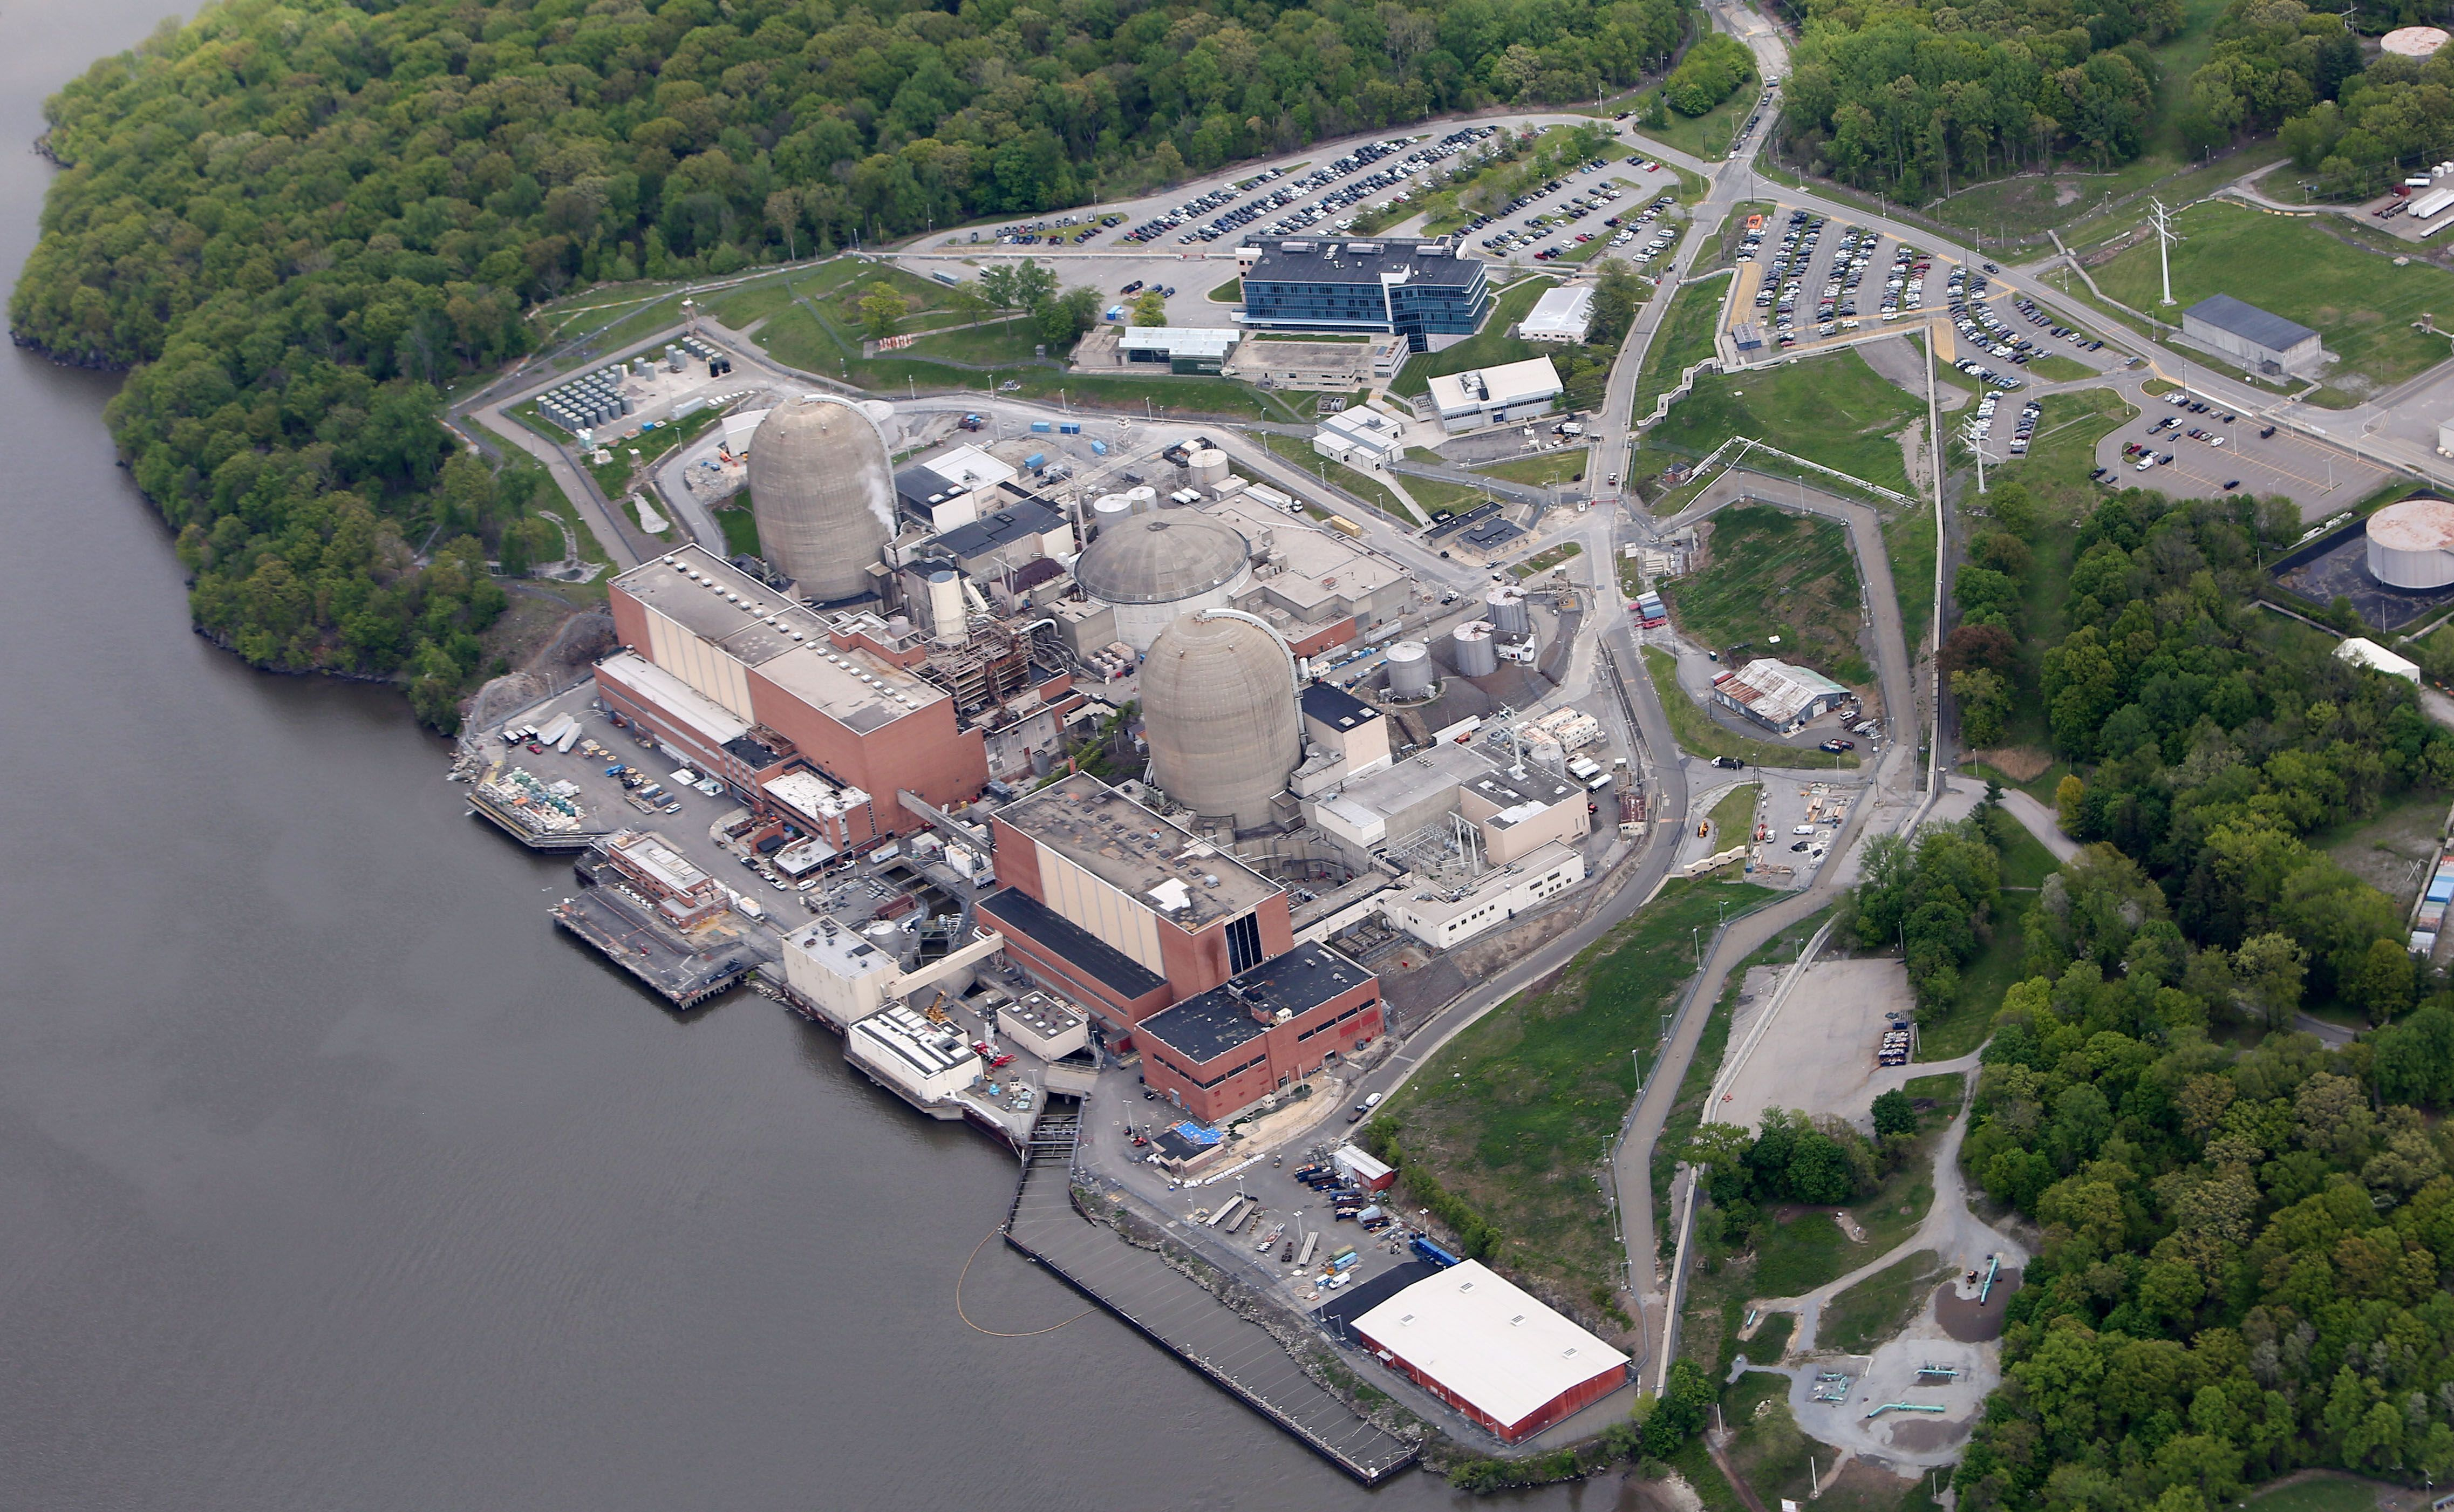 The Indian Point Nuclear Power Plant in Buchanan May 9, 2017, months after its owner, Entergy, announced an agreement to shut down the plant by 2021.